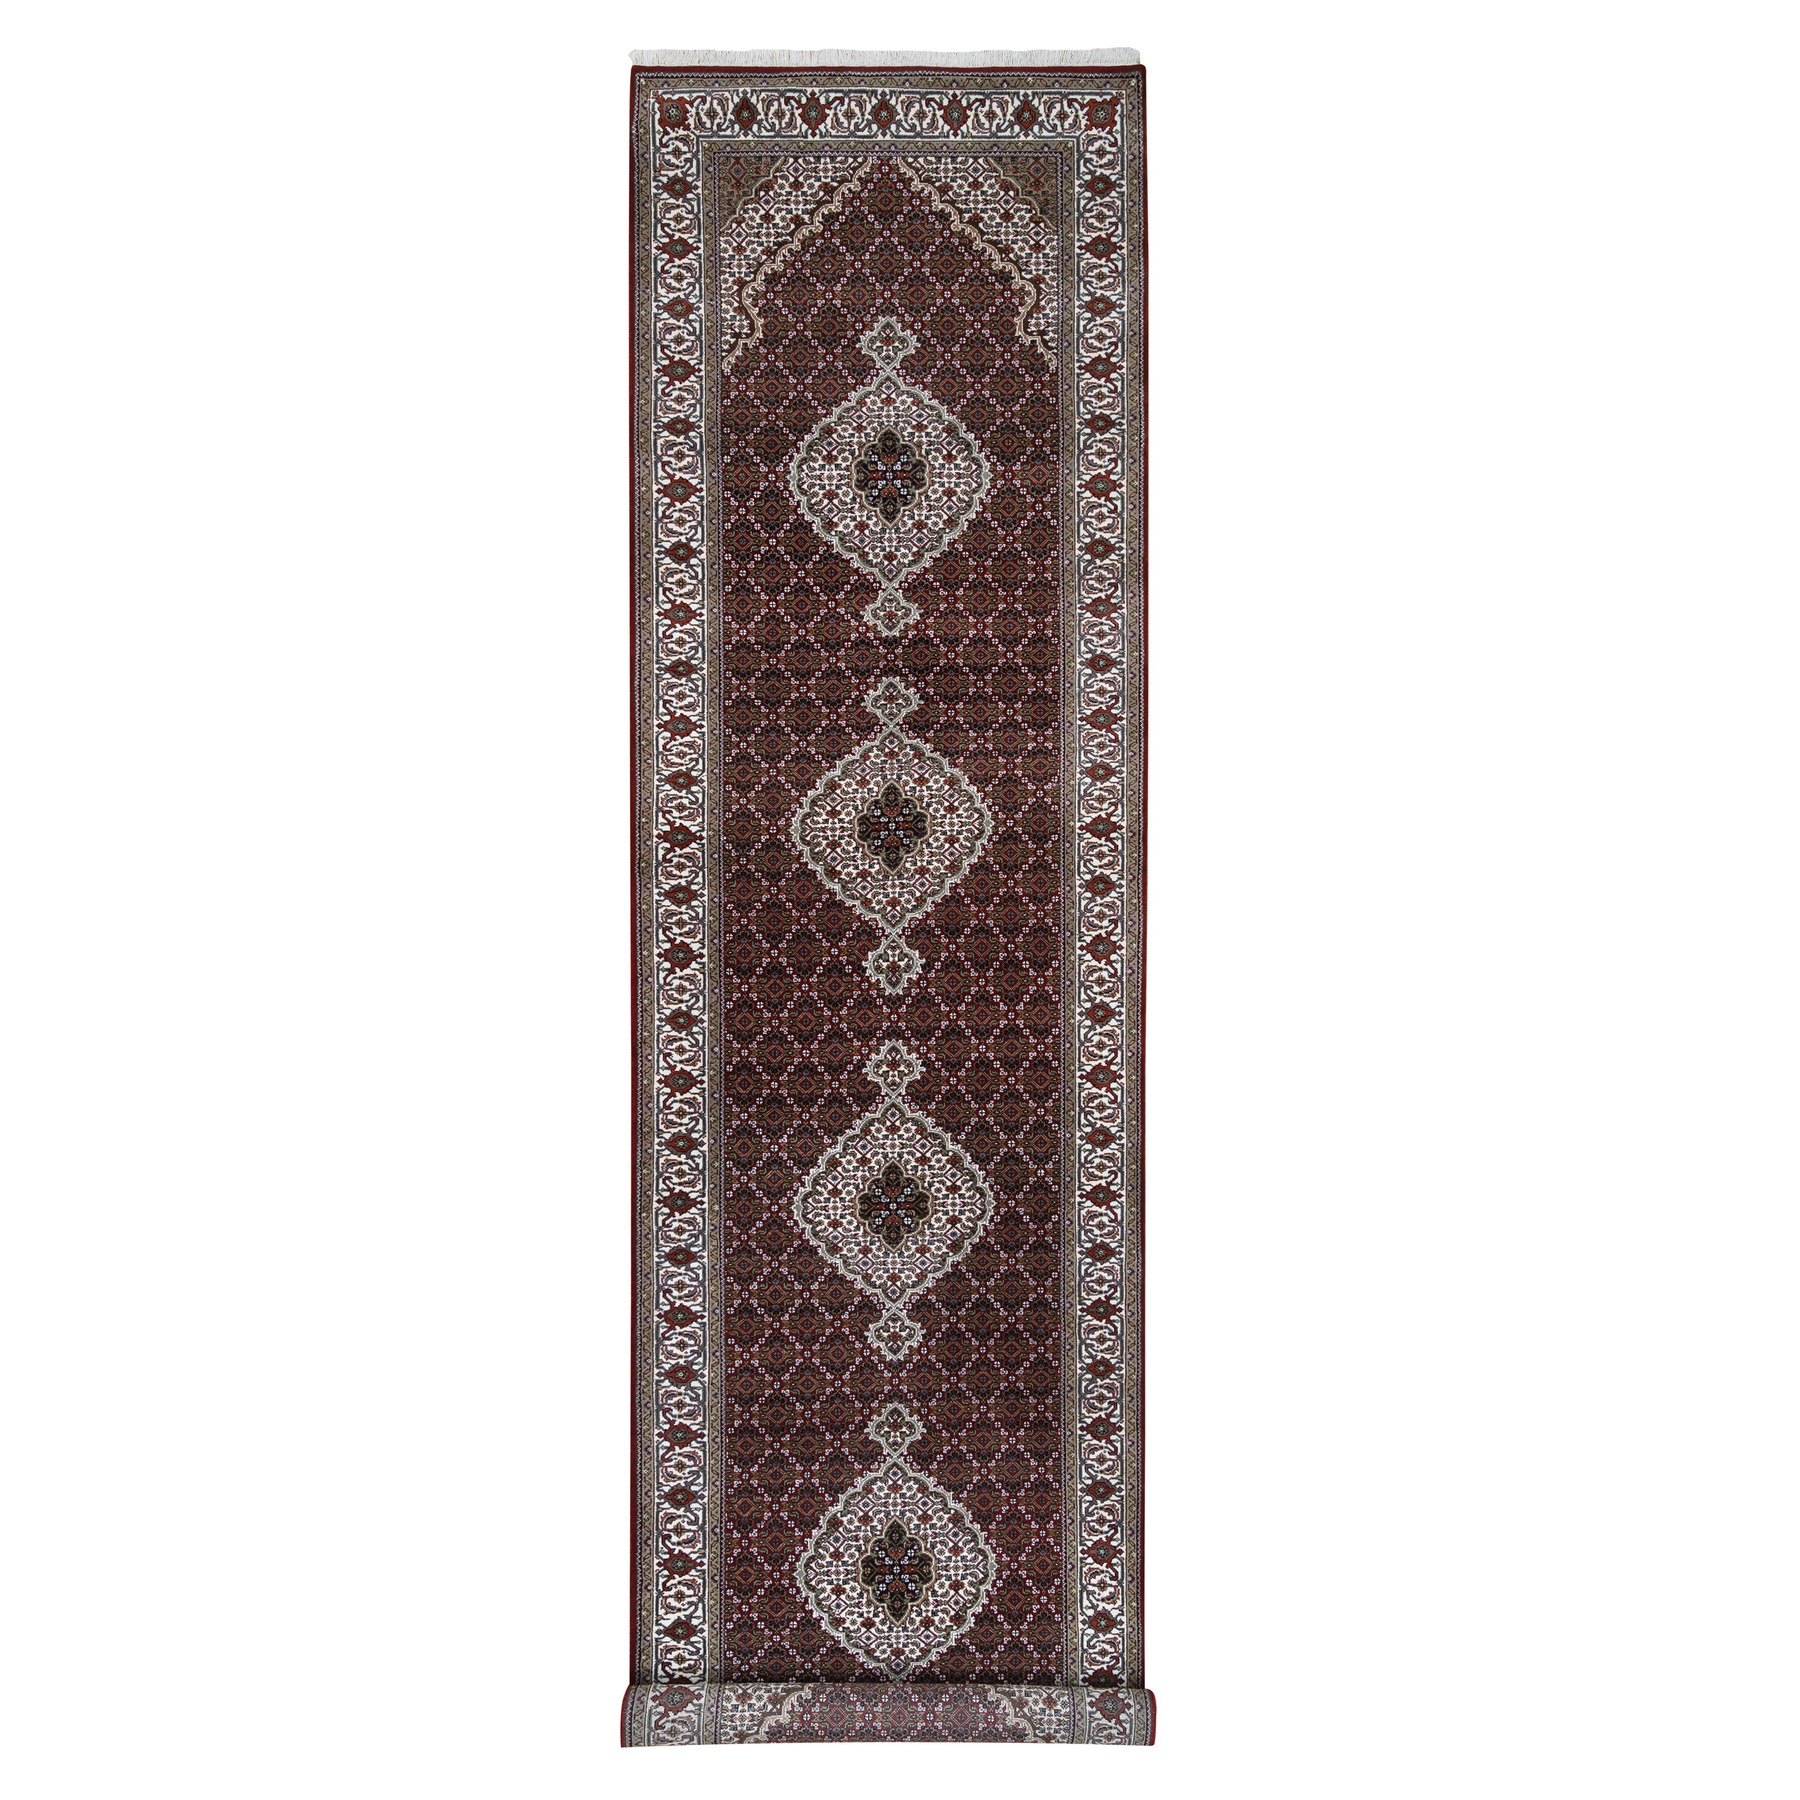 Pirniakan Collection Hand Knotted Red Rug No: 1126580